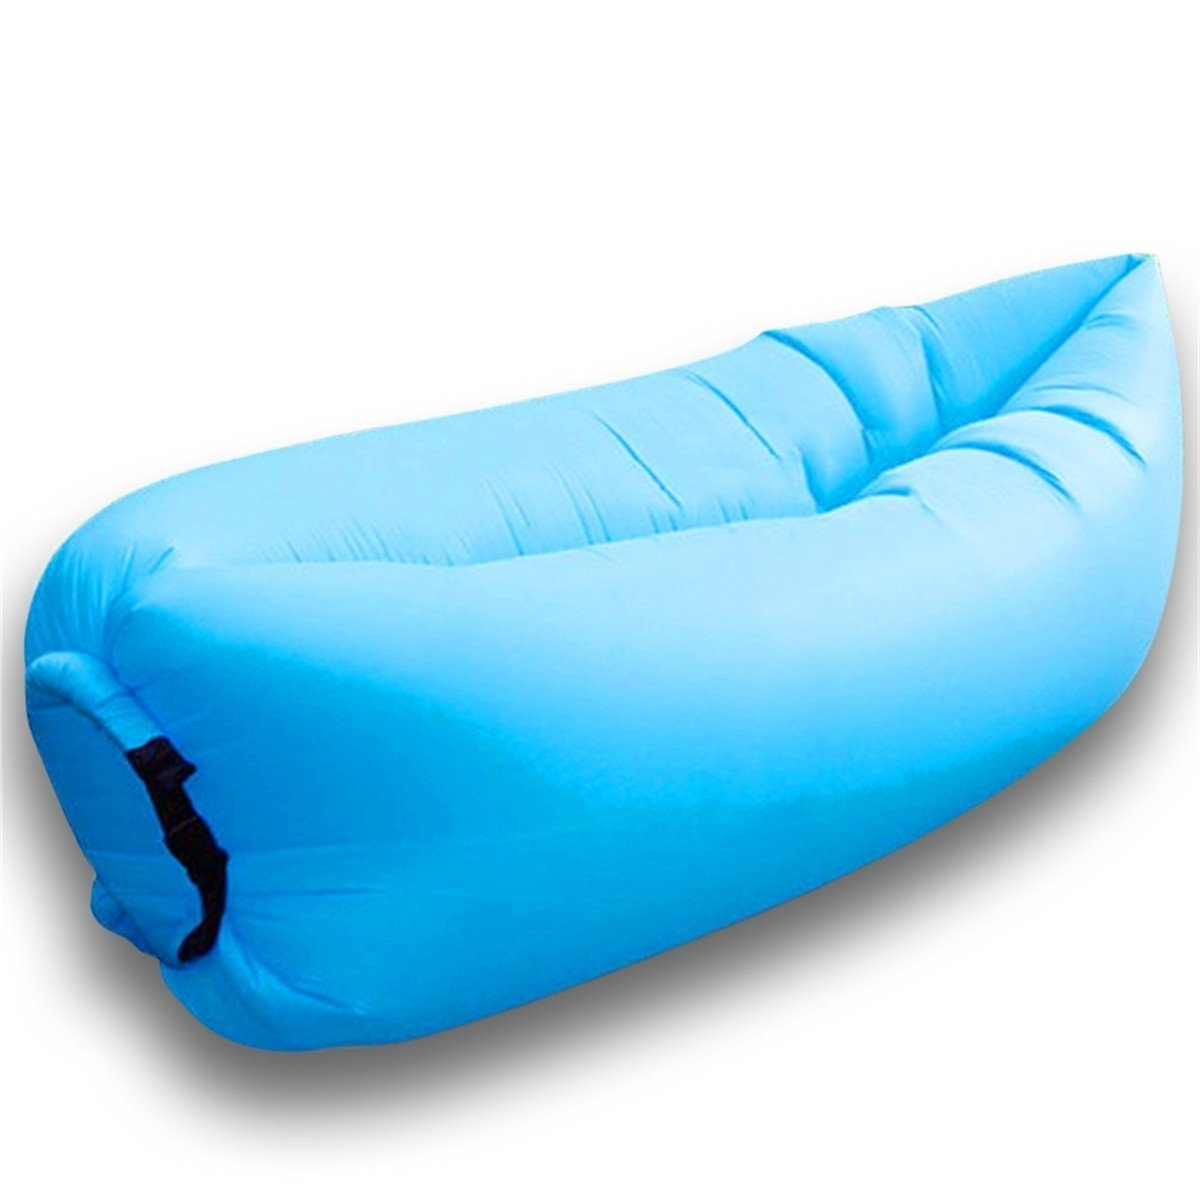 Favorite Inflatable Sofas And Chairs Intended For Inflatable Sofa Chair 56 With Inflatable Sofa Chair (View 11 of 15)